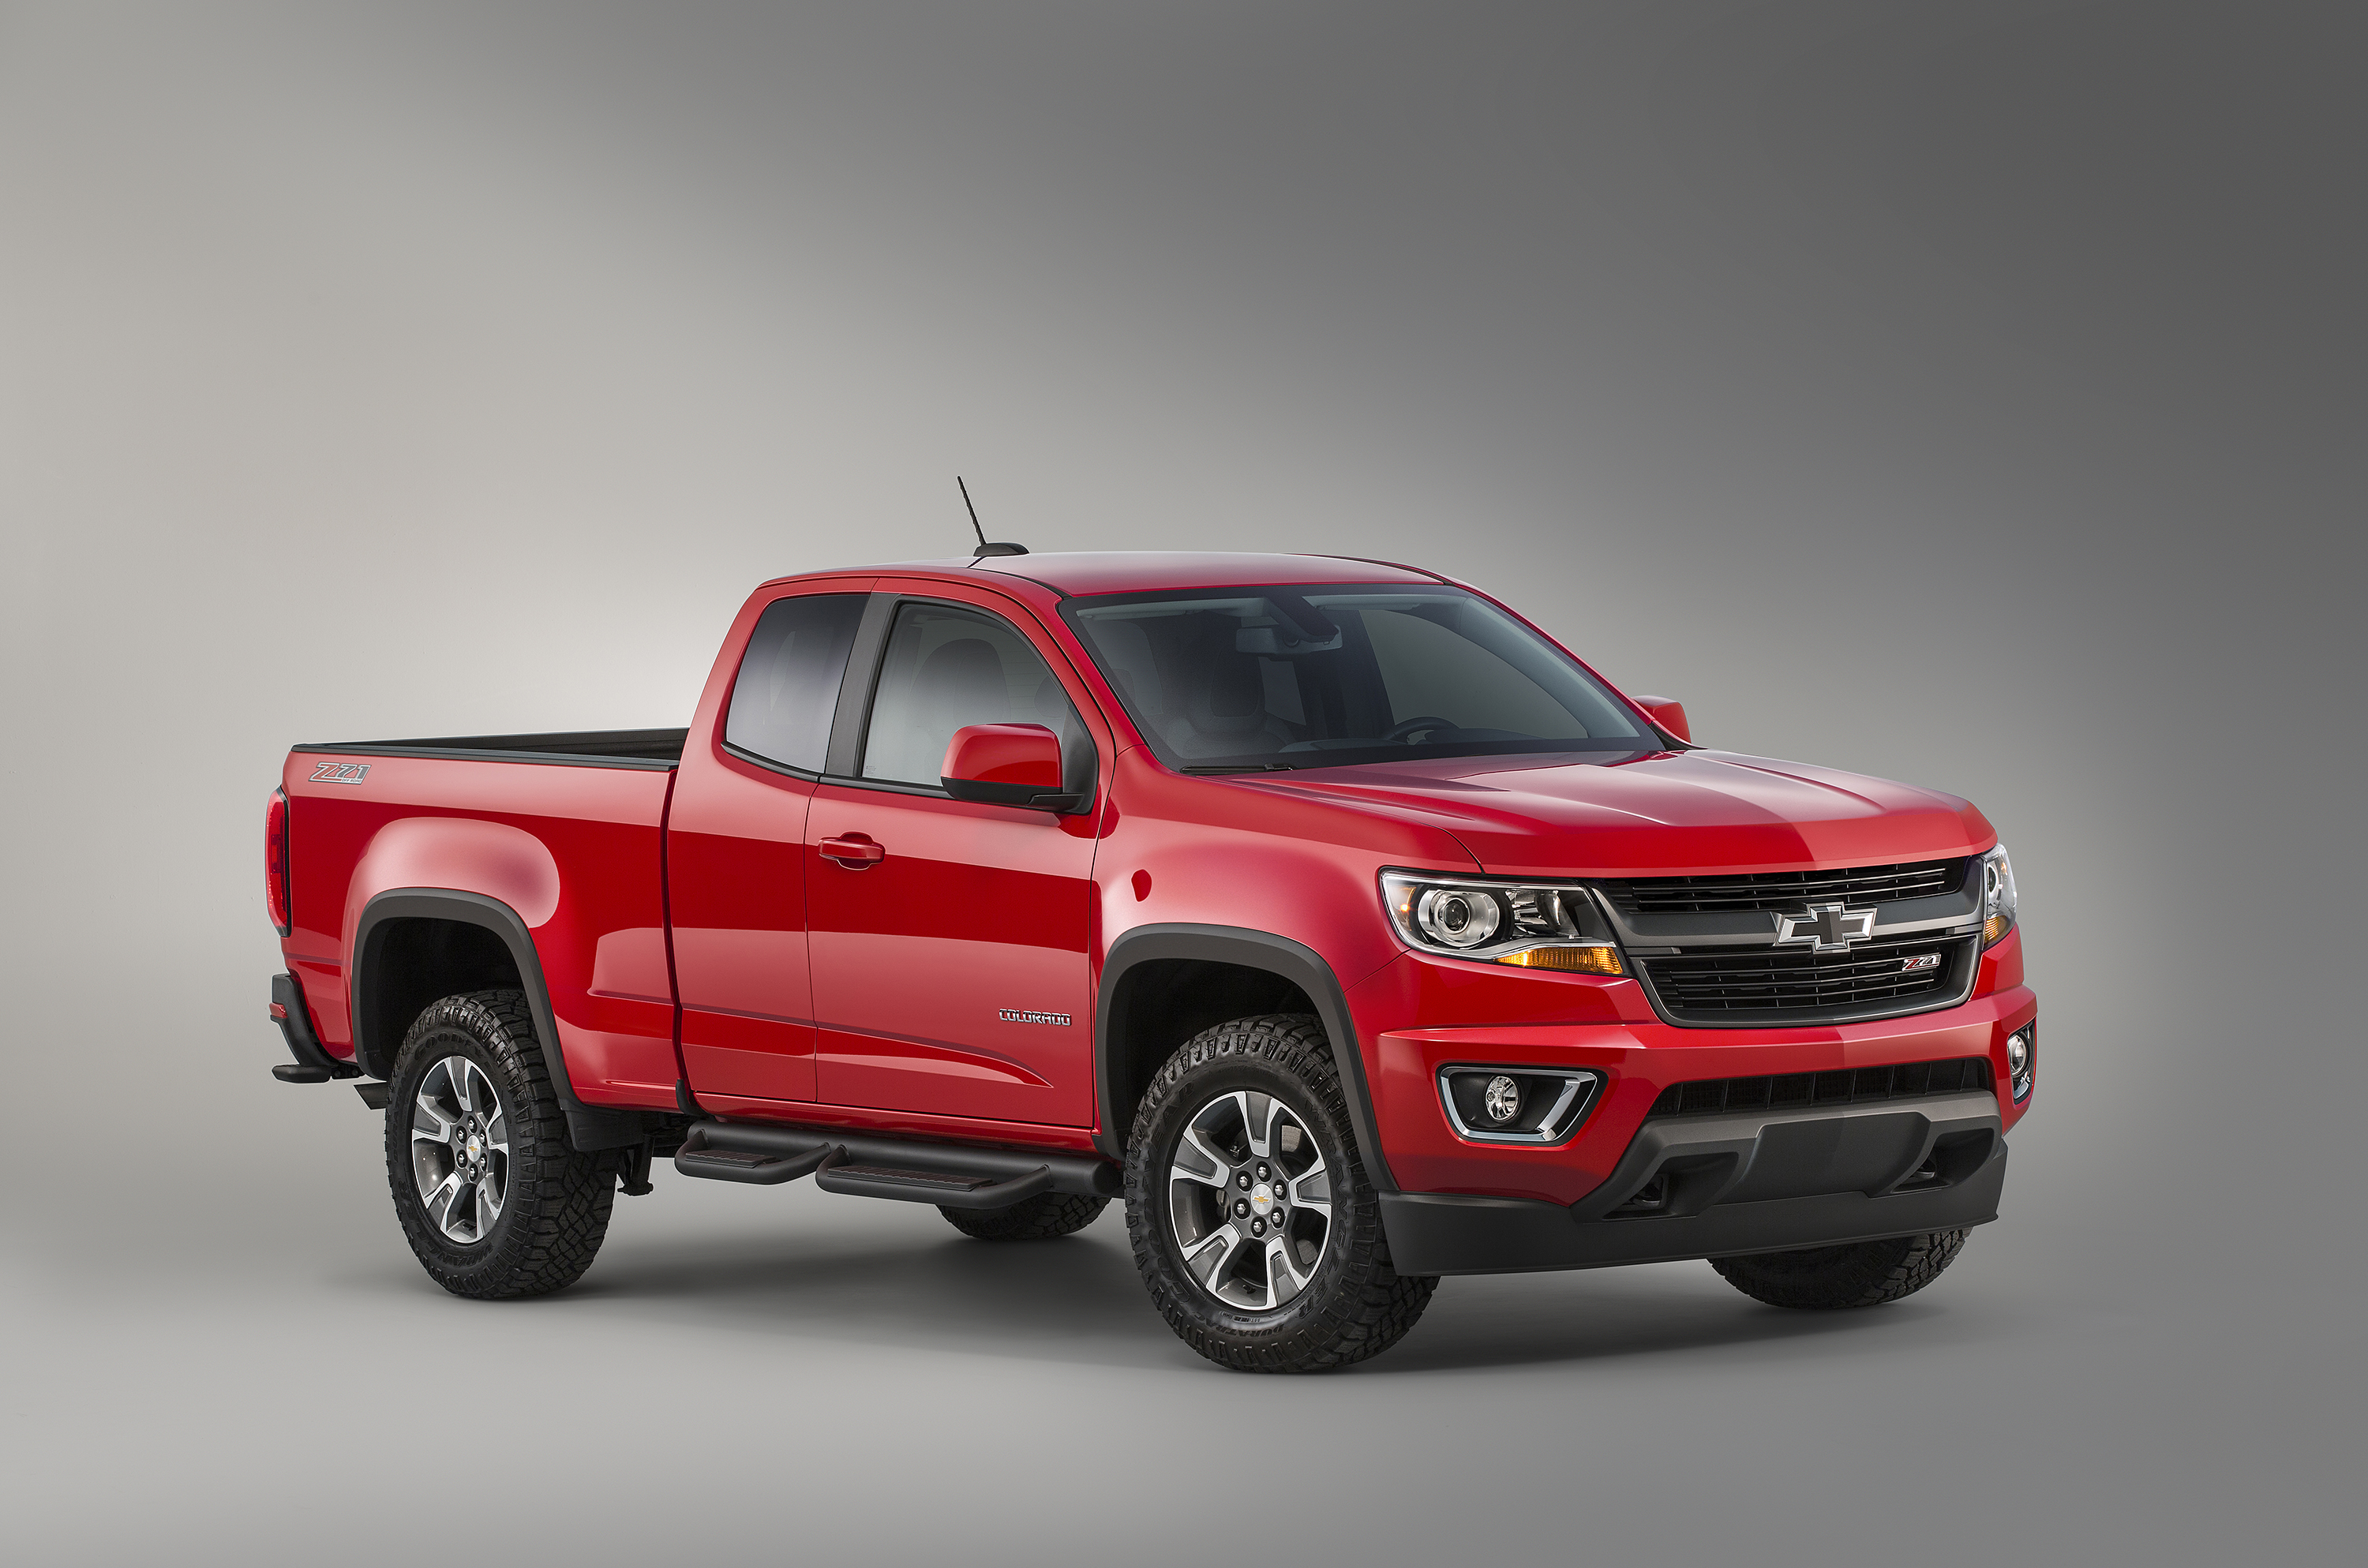 ride news chevrolet colorado h cell first truck in army fuel hydrogen